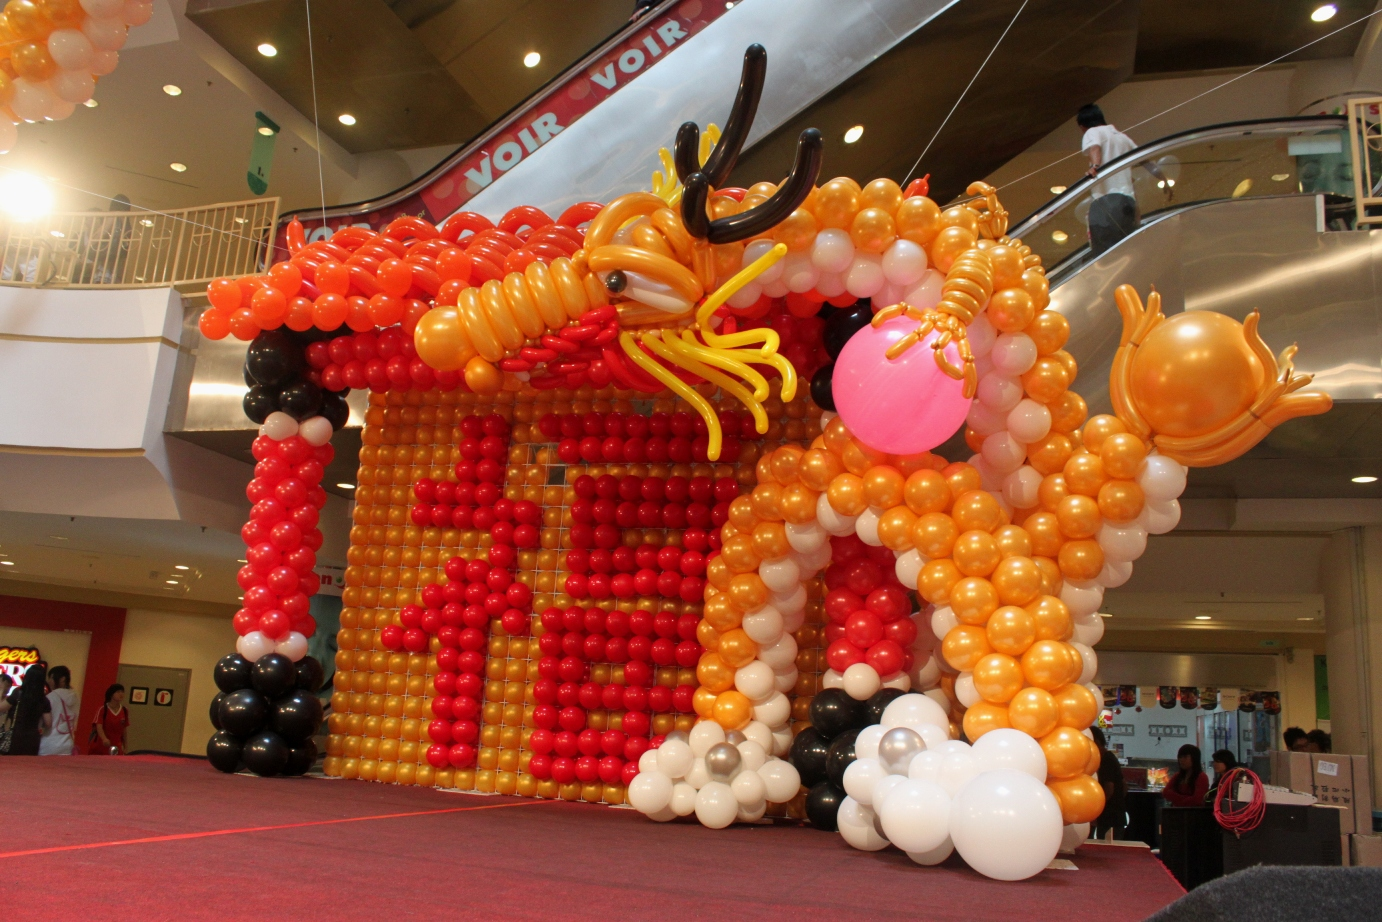 Xing Fu: MAJESTIC BALLOON DRAGONS